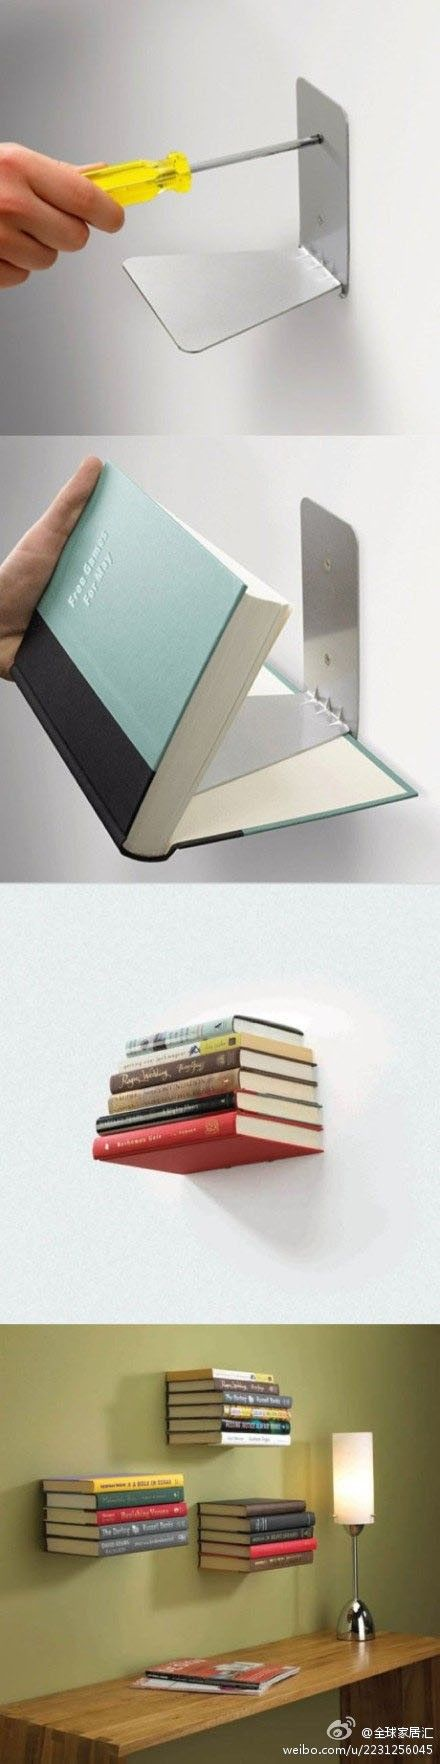 Cool but use the 1 book as a shelf for other items instead of stacking more books./></p> </div><!-- .entry-content -->   </article><!-- #post-## -->  <article id=